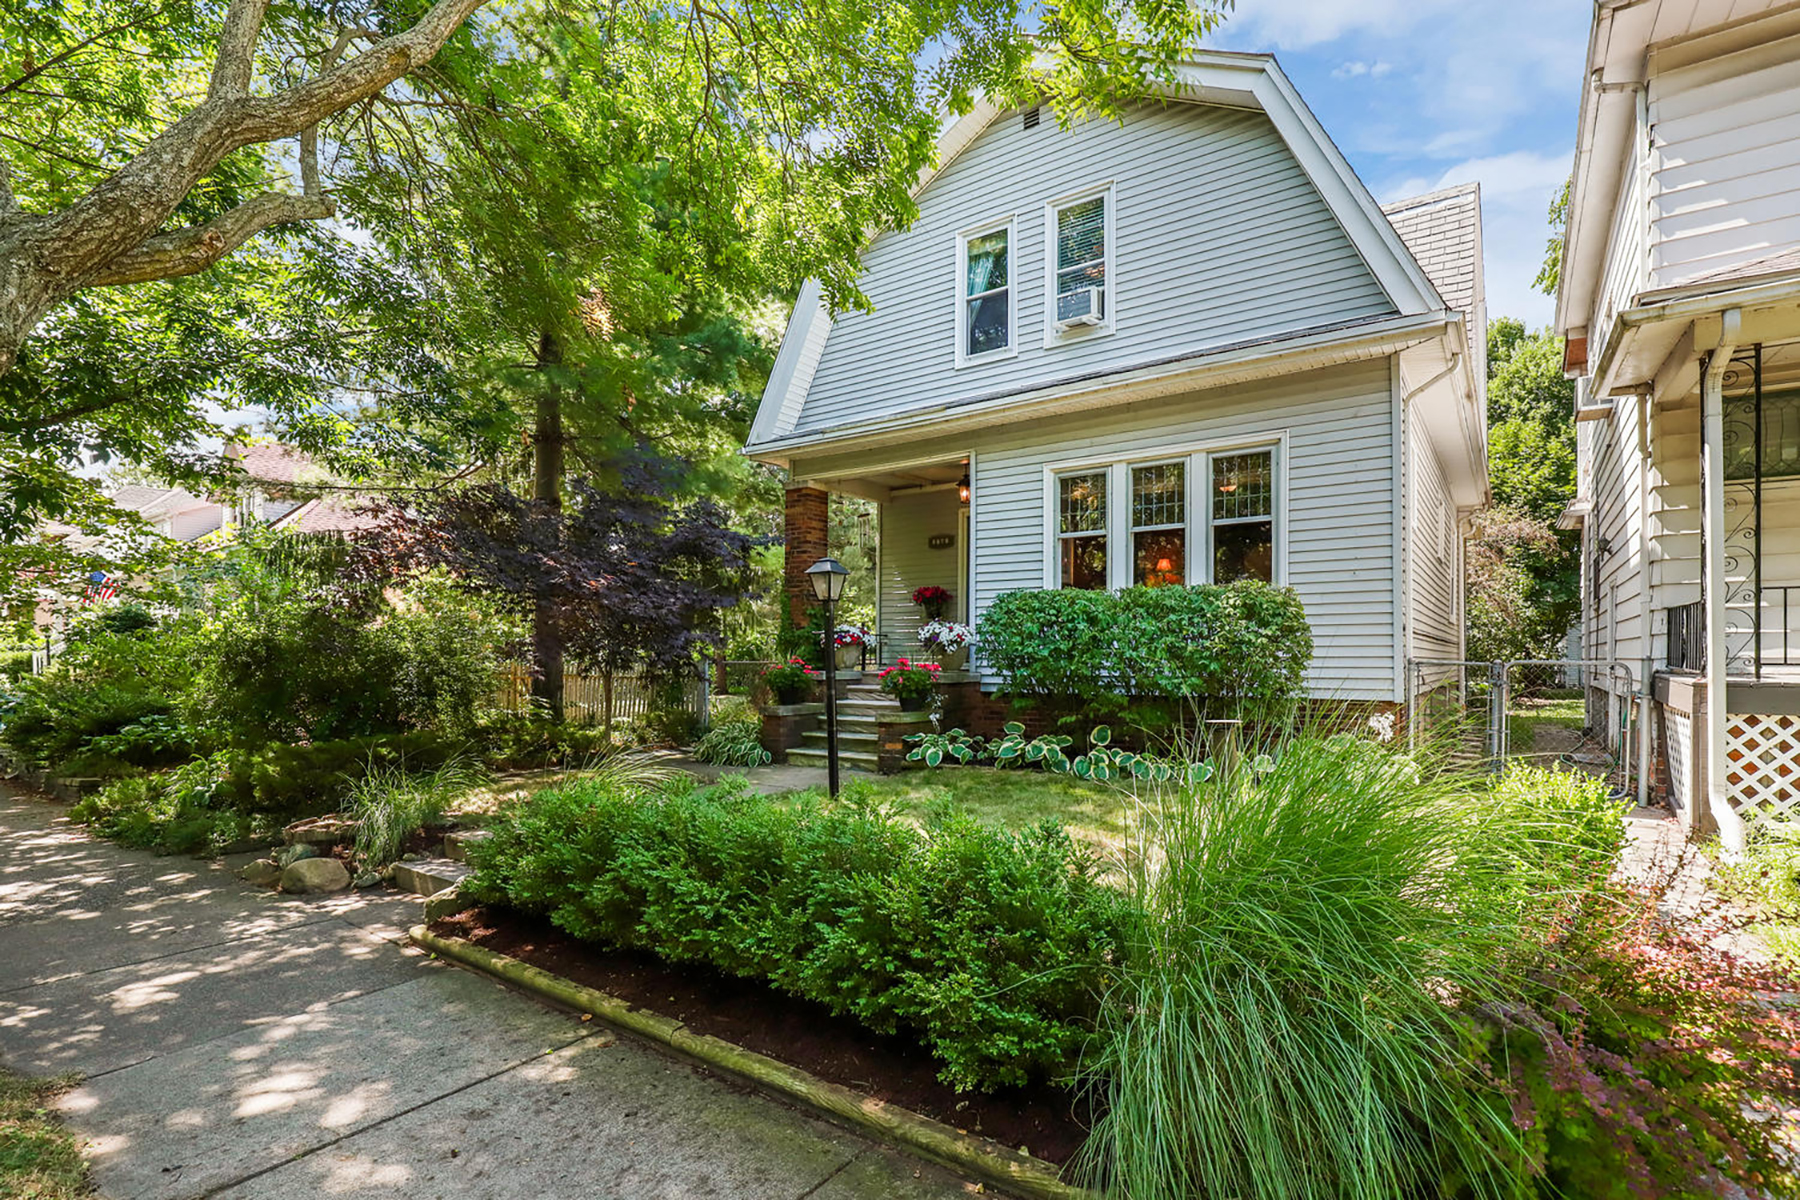 Single Family Homes for Sale at Grosse Pointe Park 1141 Lakepointe St Grosse Pointe Park, Michigan 48230 United States